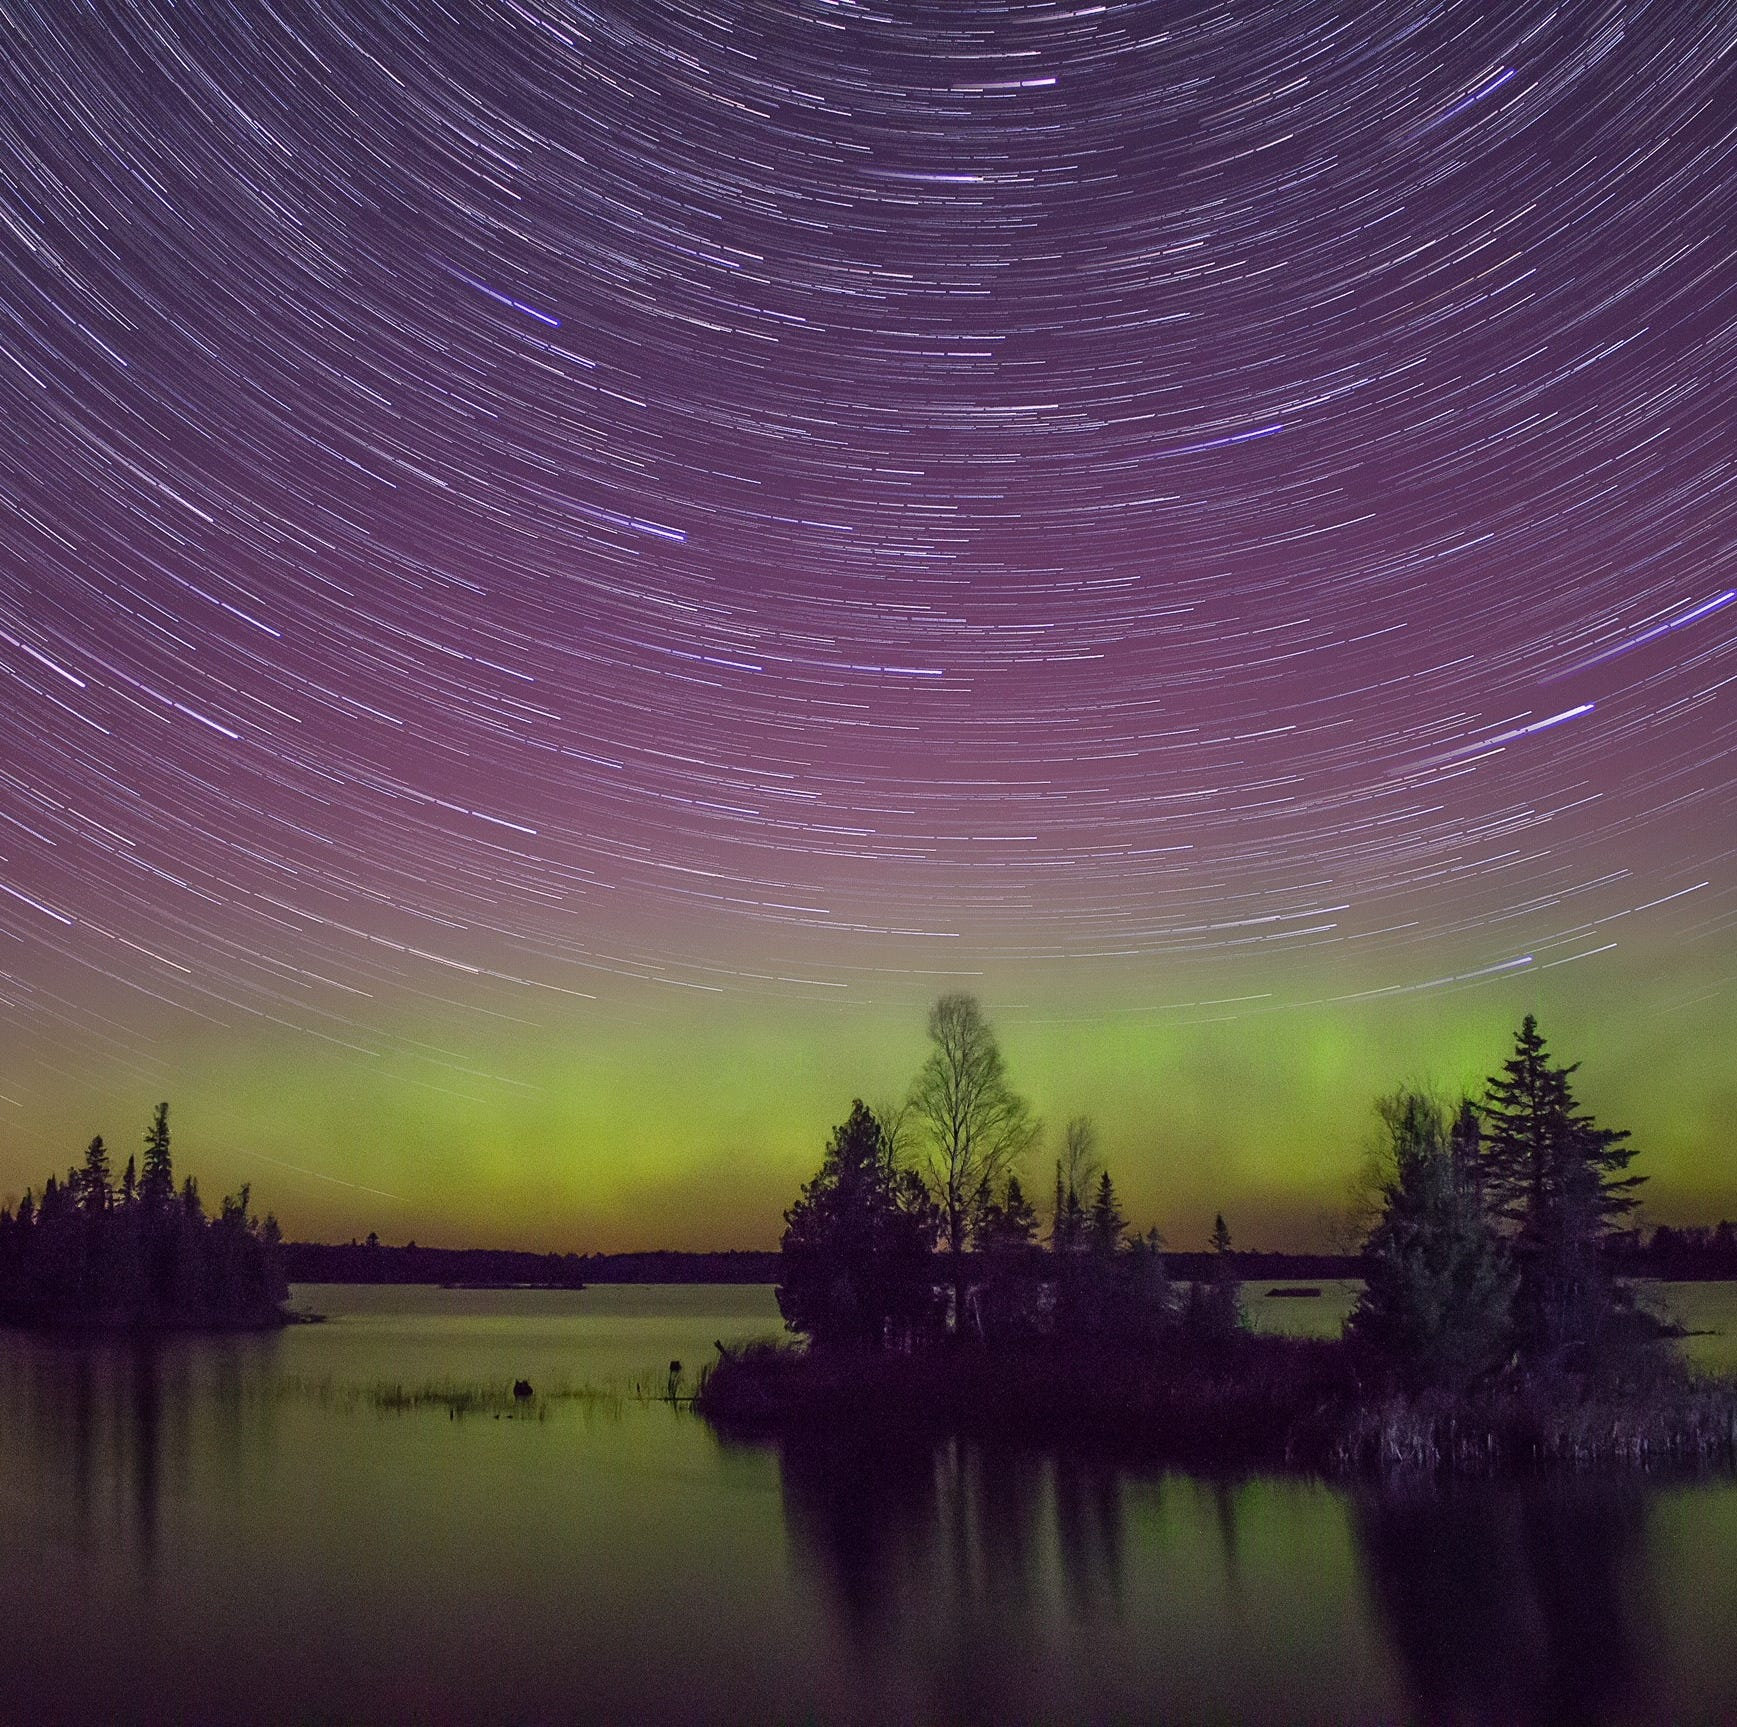 Northern lights might put on a Saturday night show in Wisconsin skies